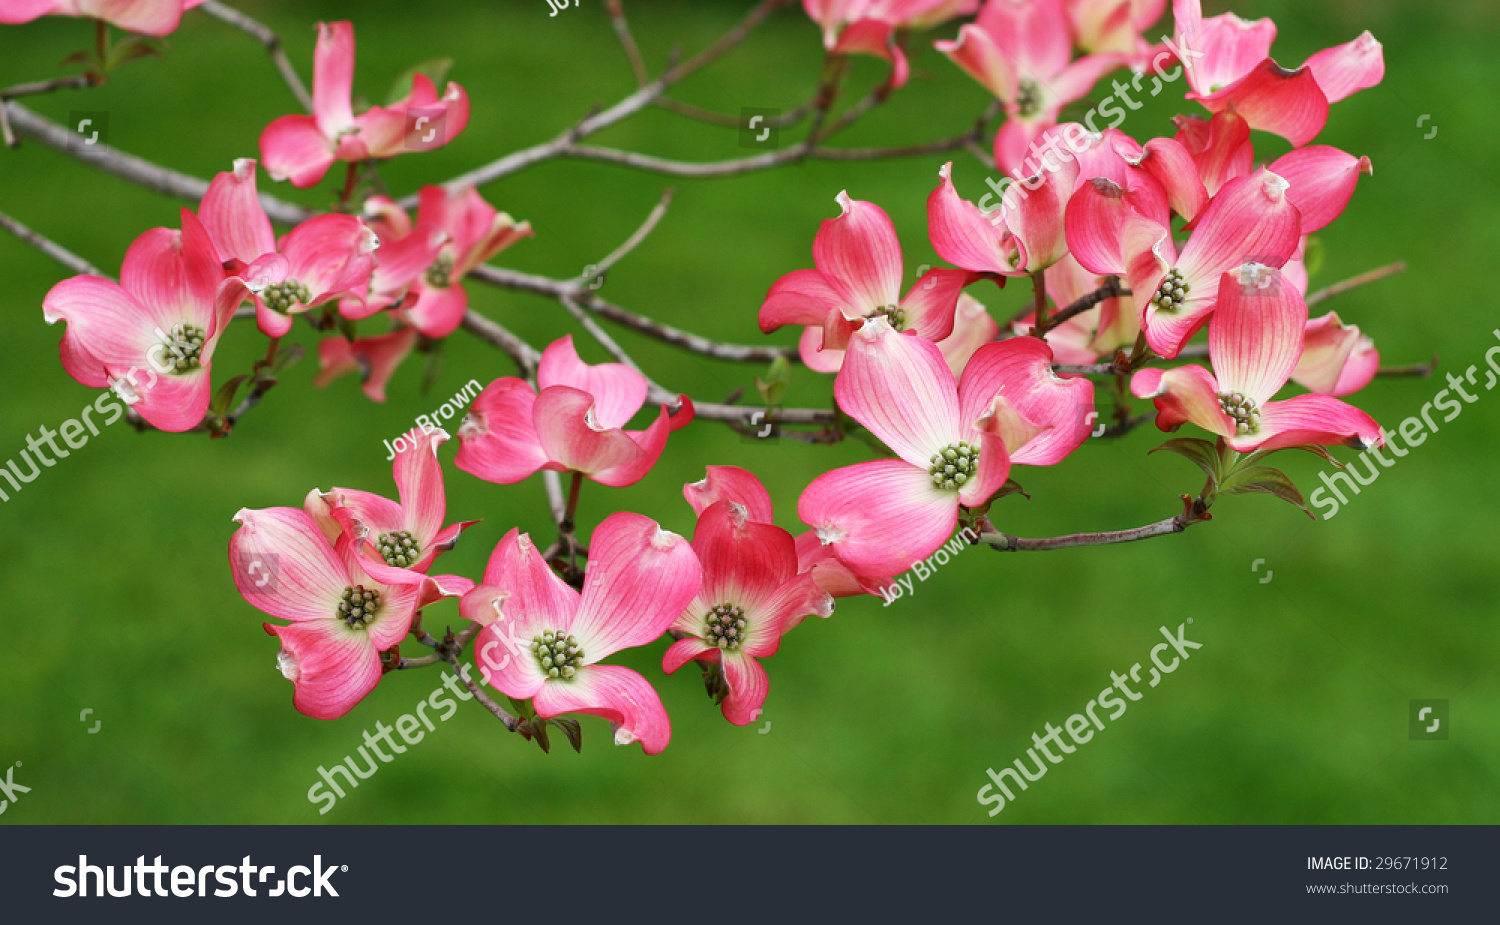 Pink Dogwood Tree Flowers Stock Photo Edit Now 29671912 Shutterstock